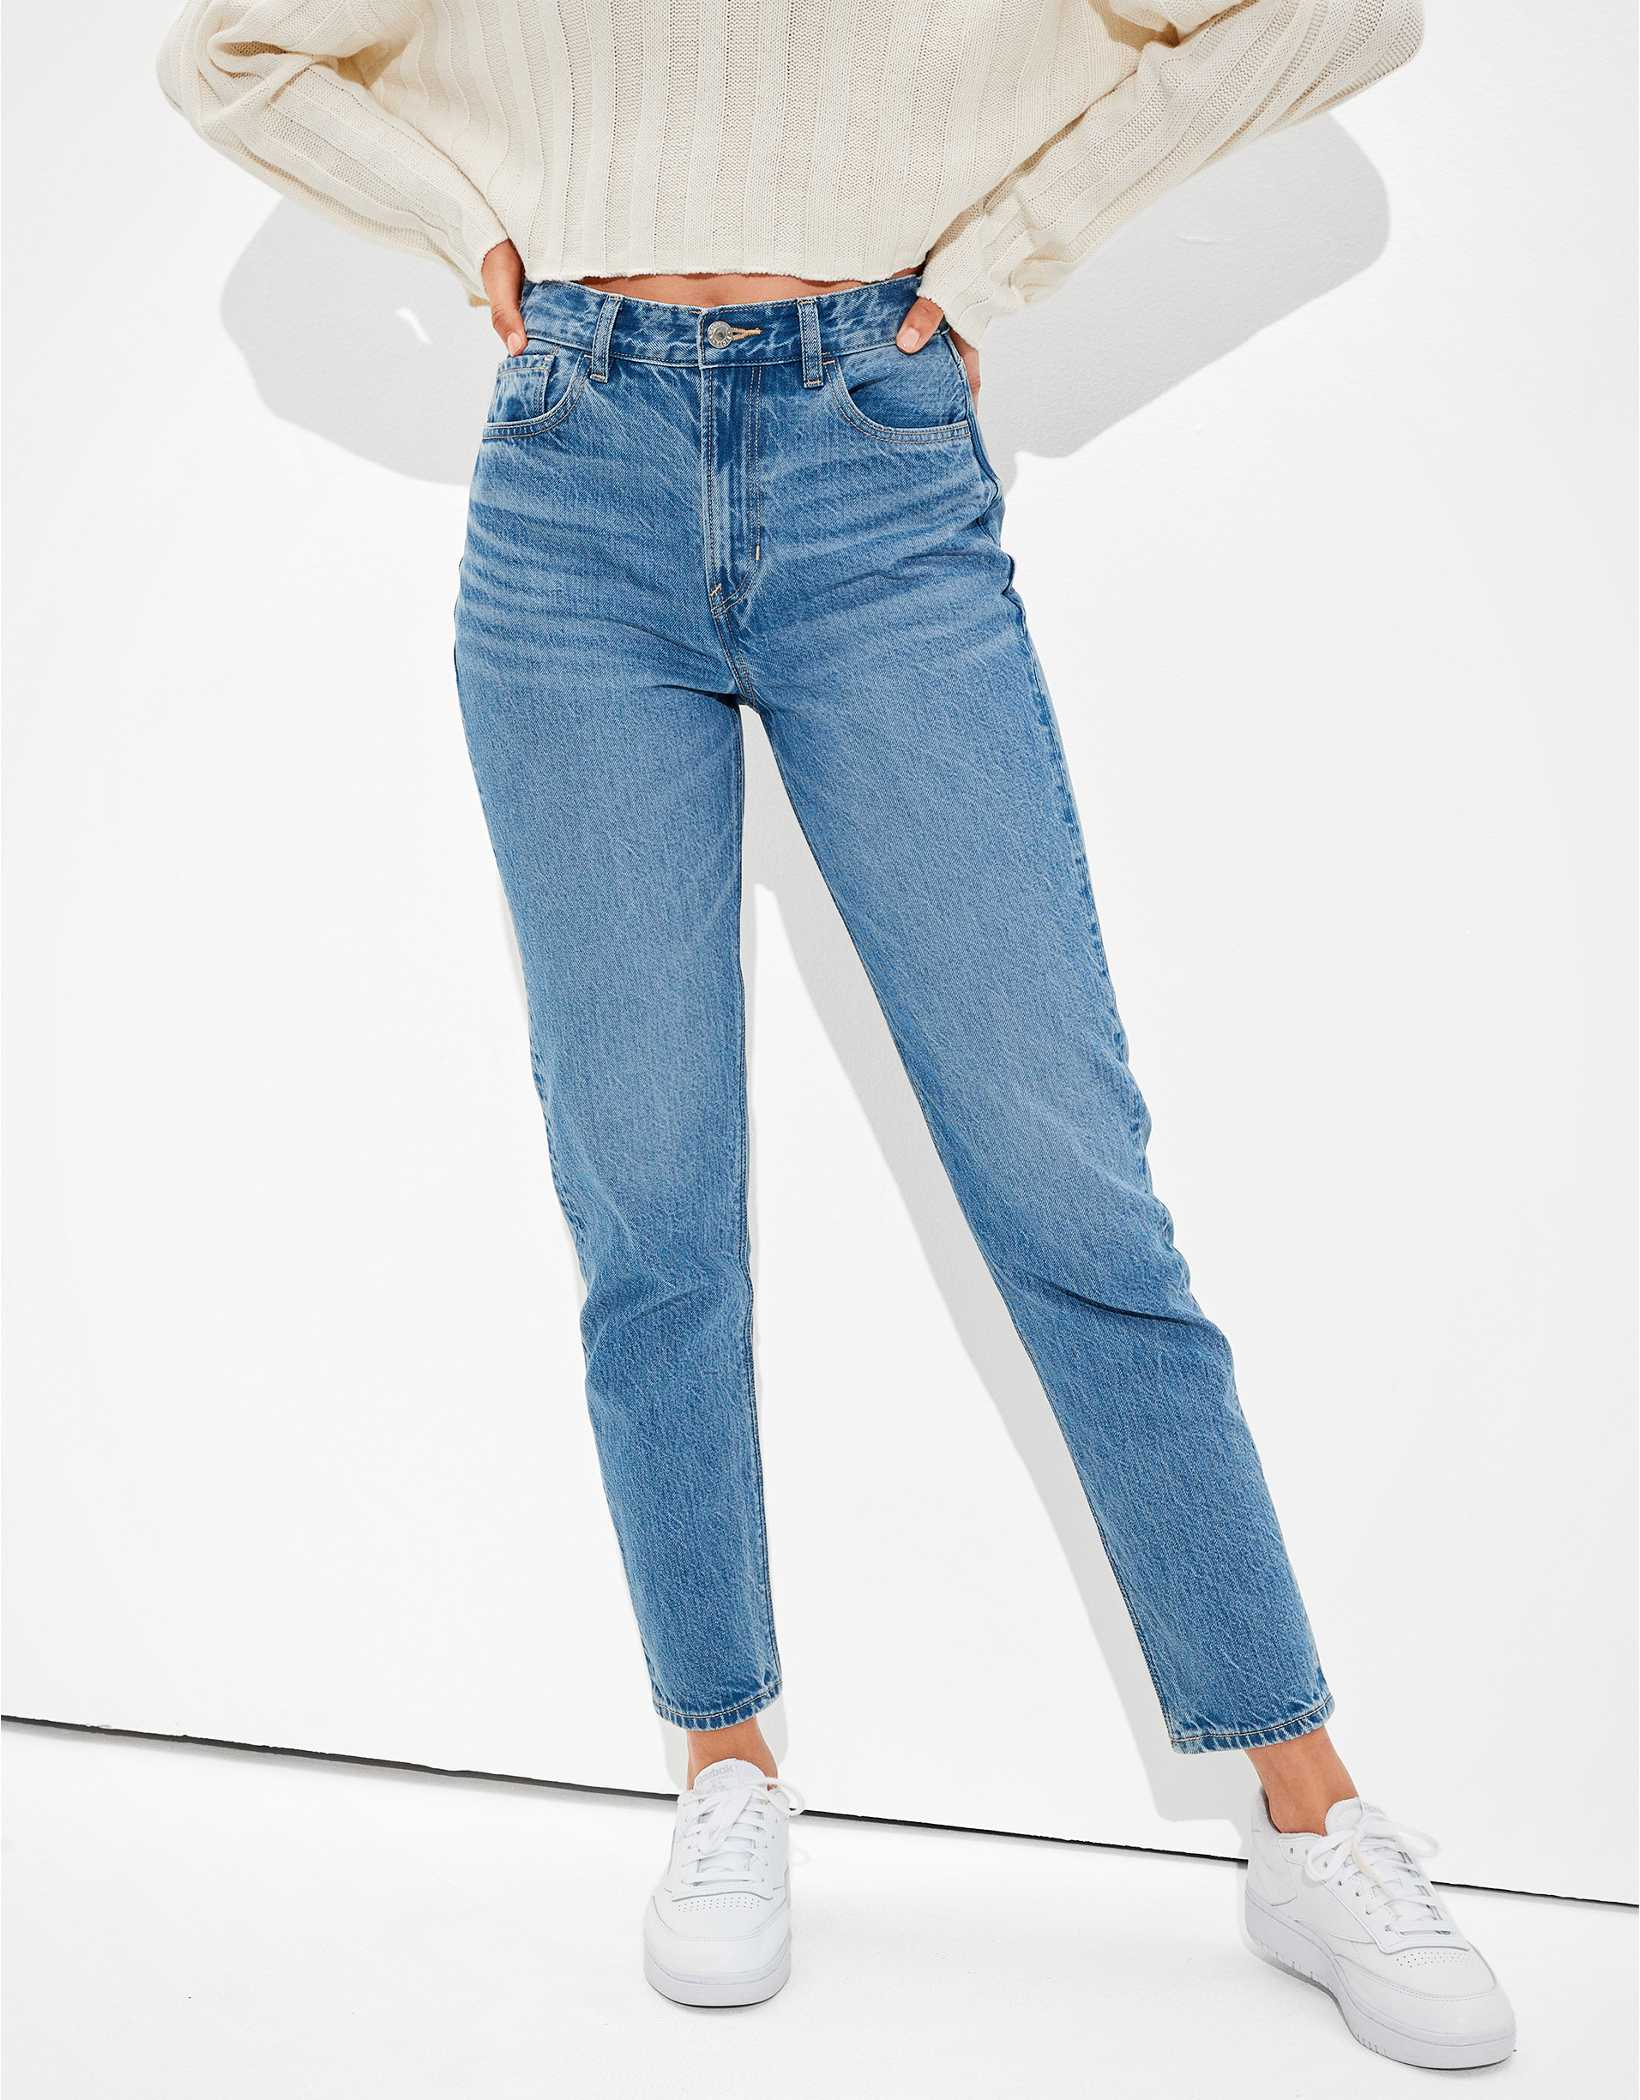 AE x The Jeans Redesign Mom Jean